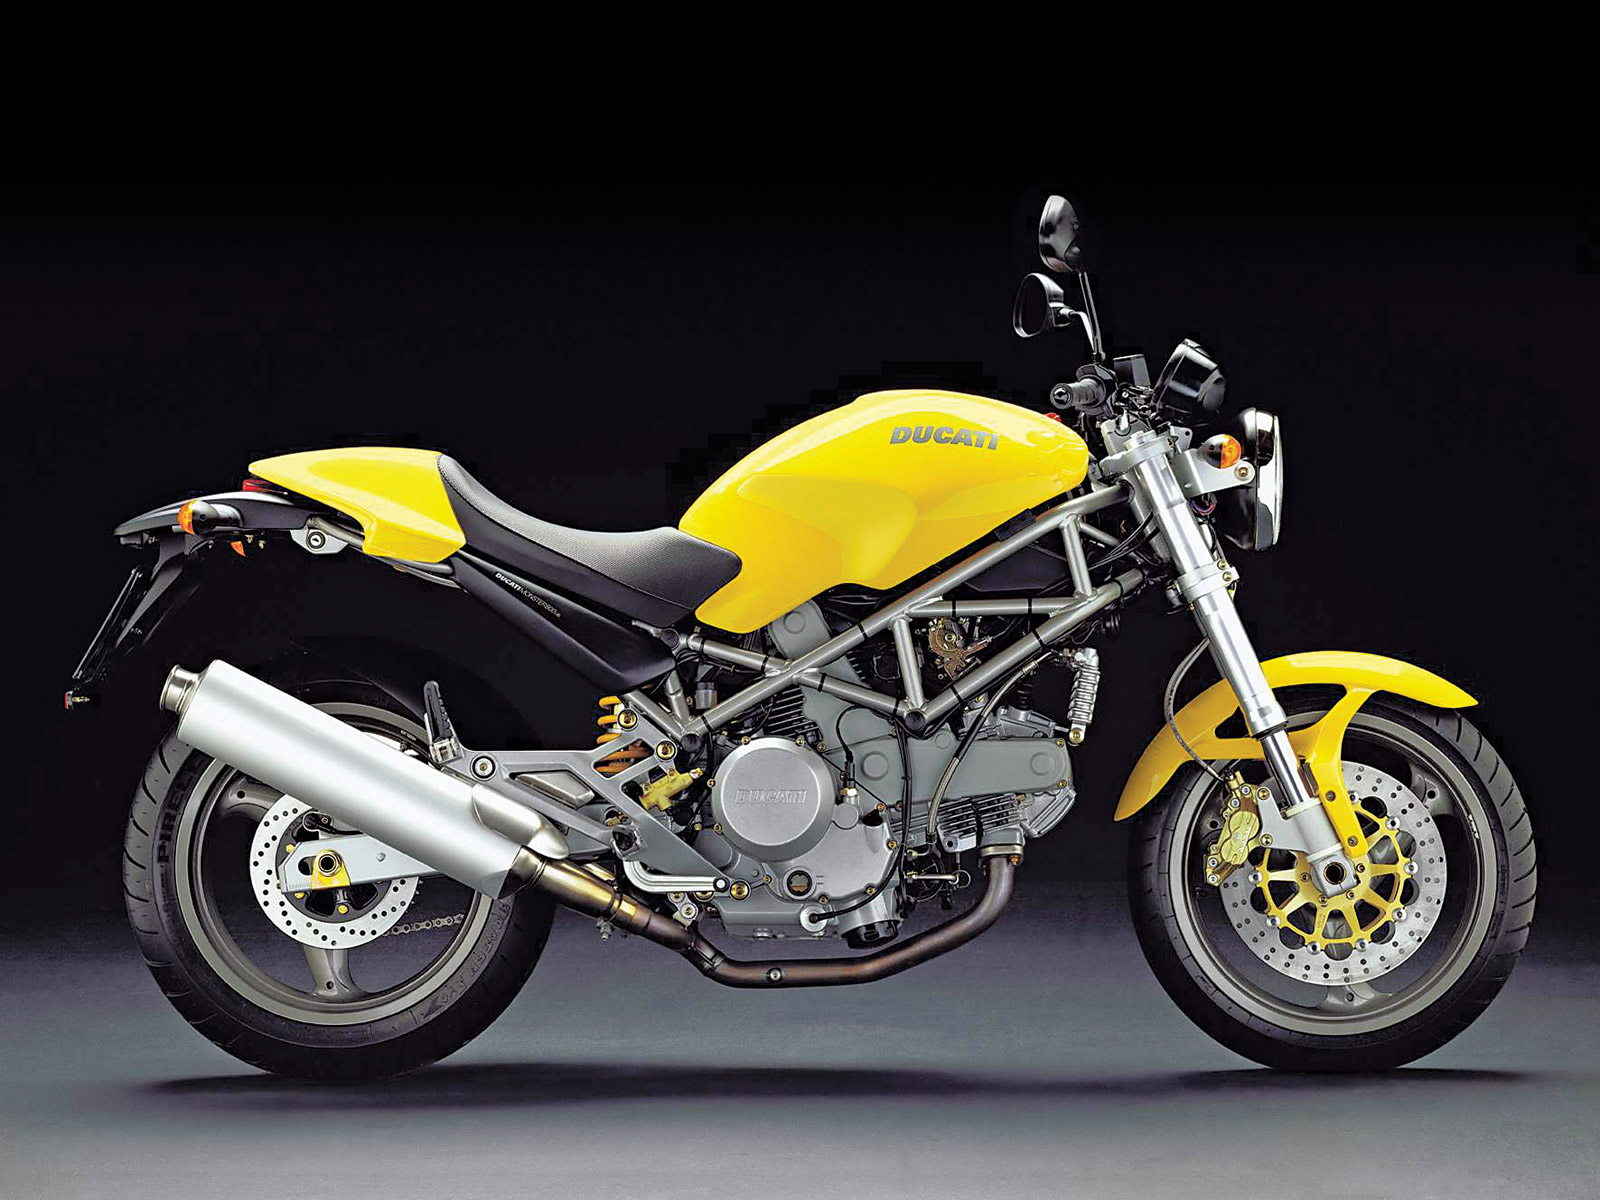 Ducati Monster 800 images #154664